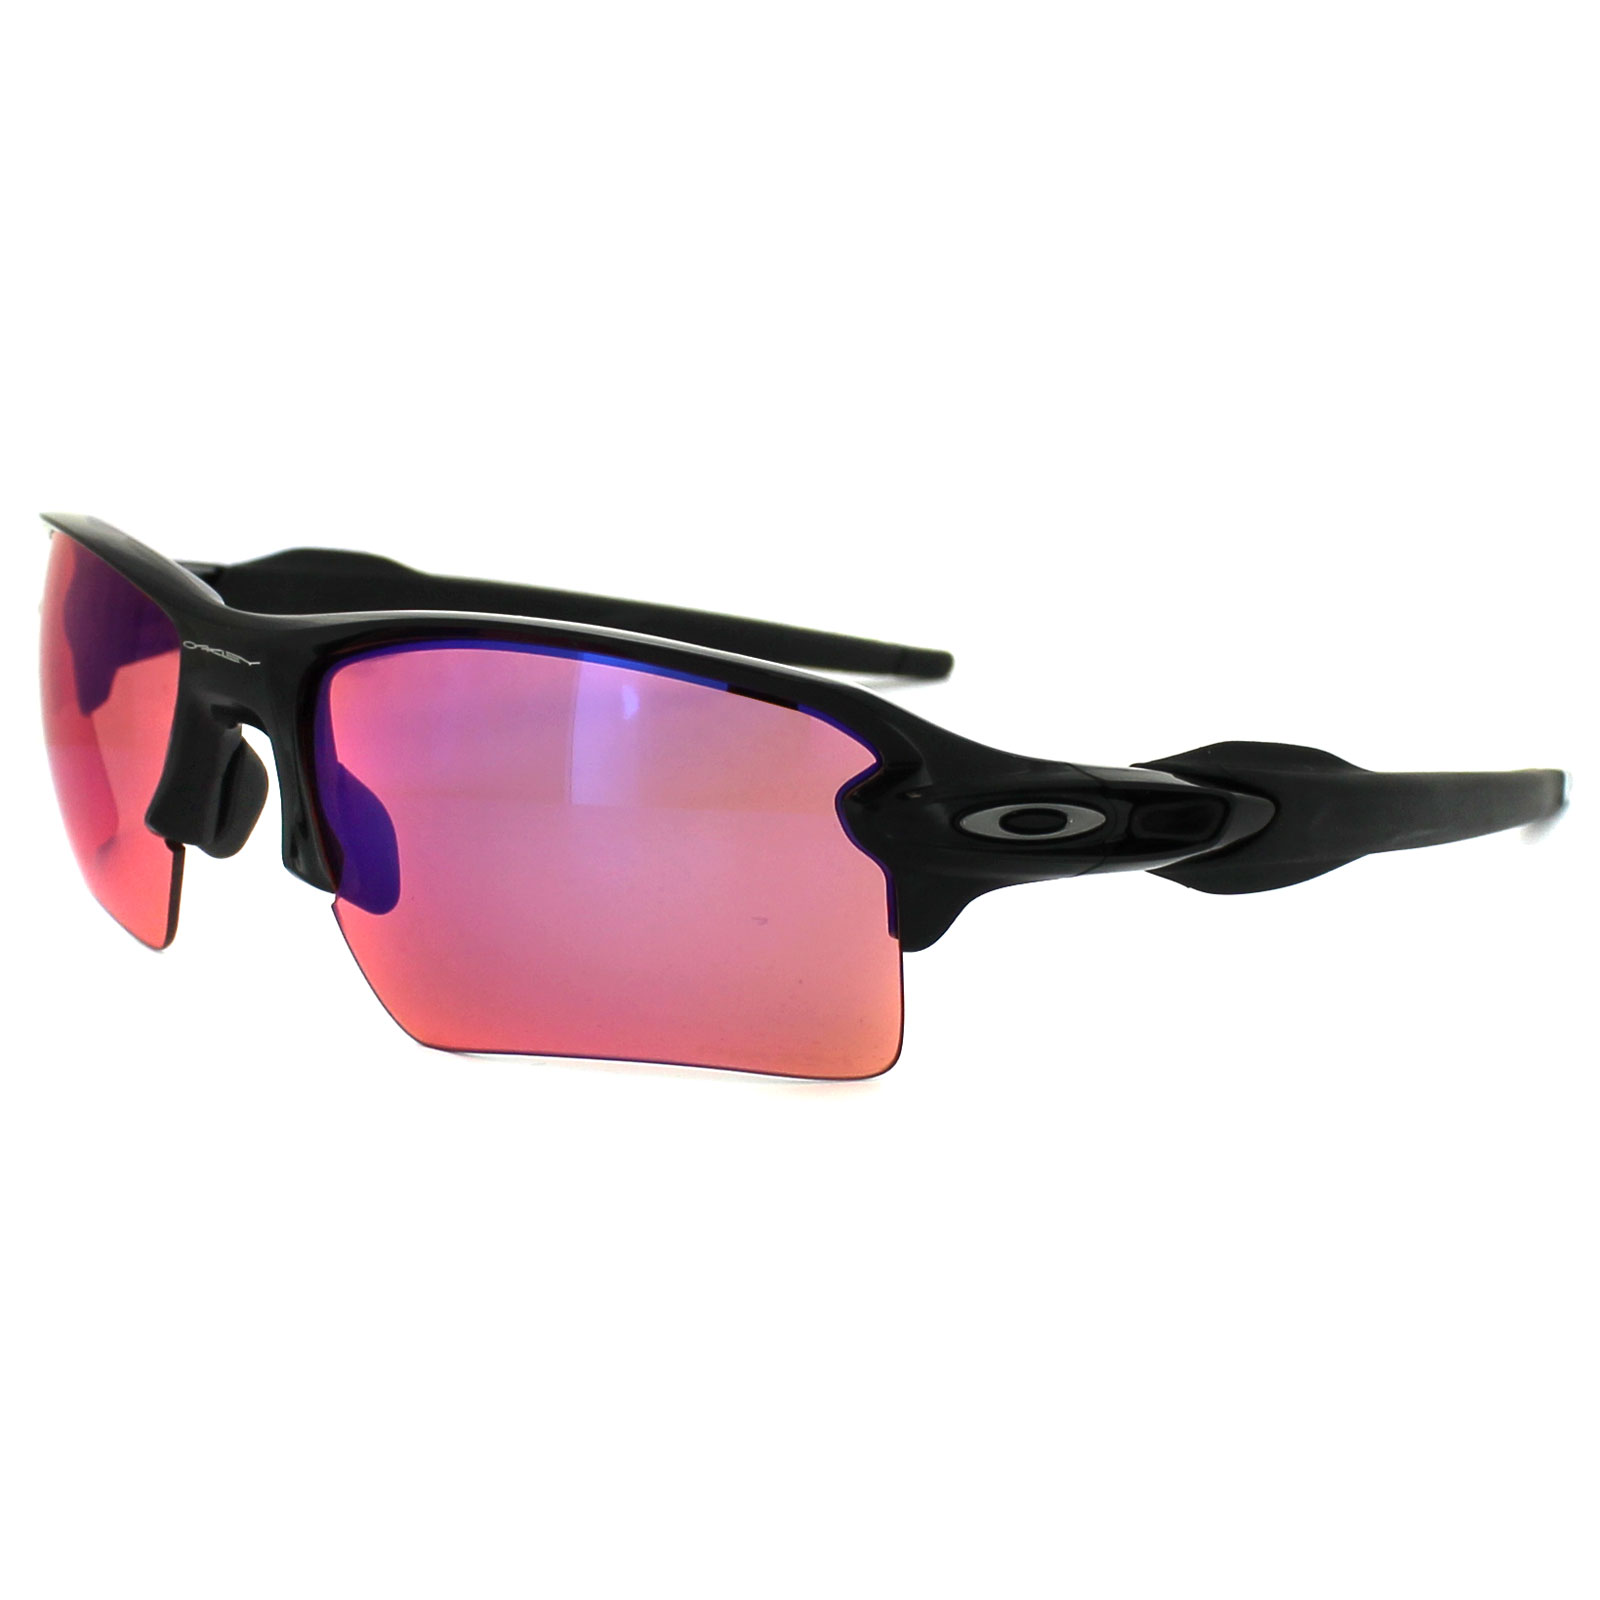 44f0b03329 Cheap Oakley Flak 2.0 XL Sunglasses - Discounted Sunglasses